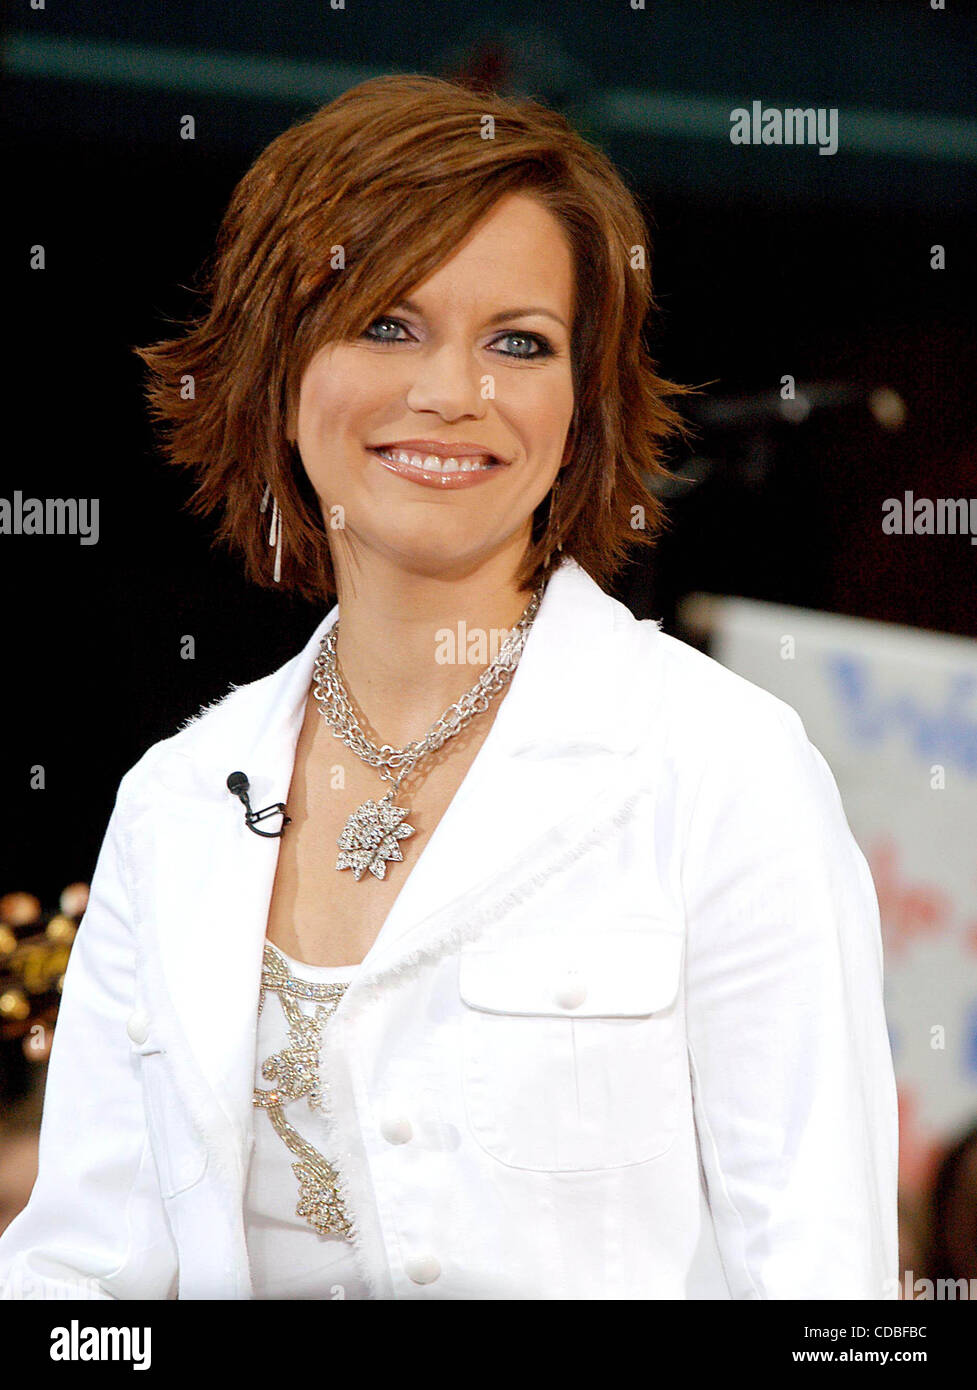 k37284ar.martina mcbride performing on the nbc today show at